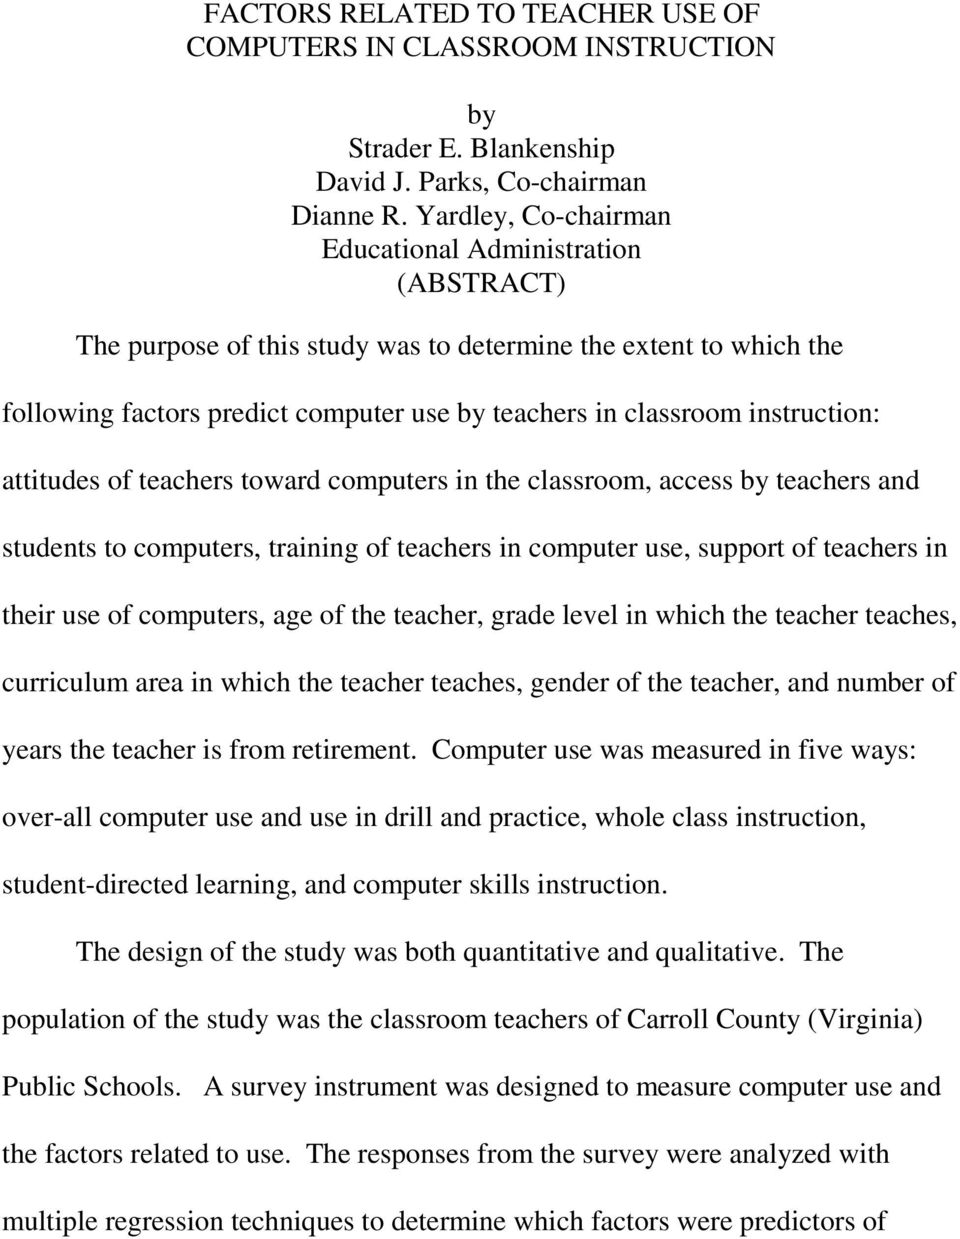 instruction: attitudes of teachers toward computers in the classroom, access by teachers and students to computers, training of teachers in computer use, support of teachers in their use of